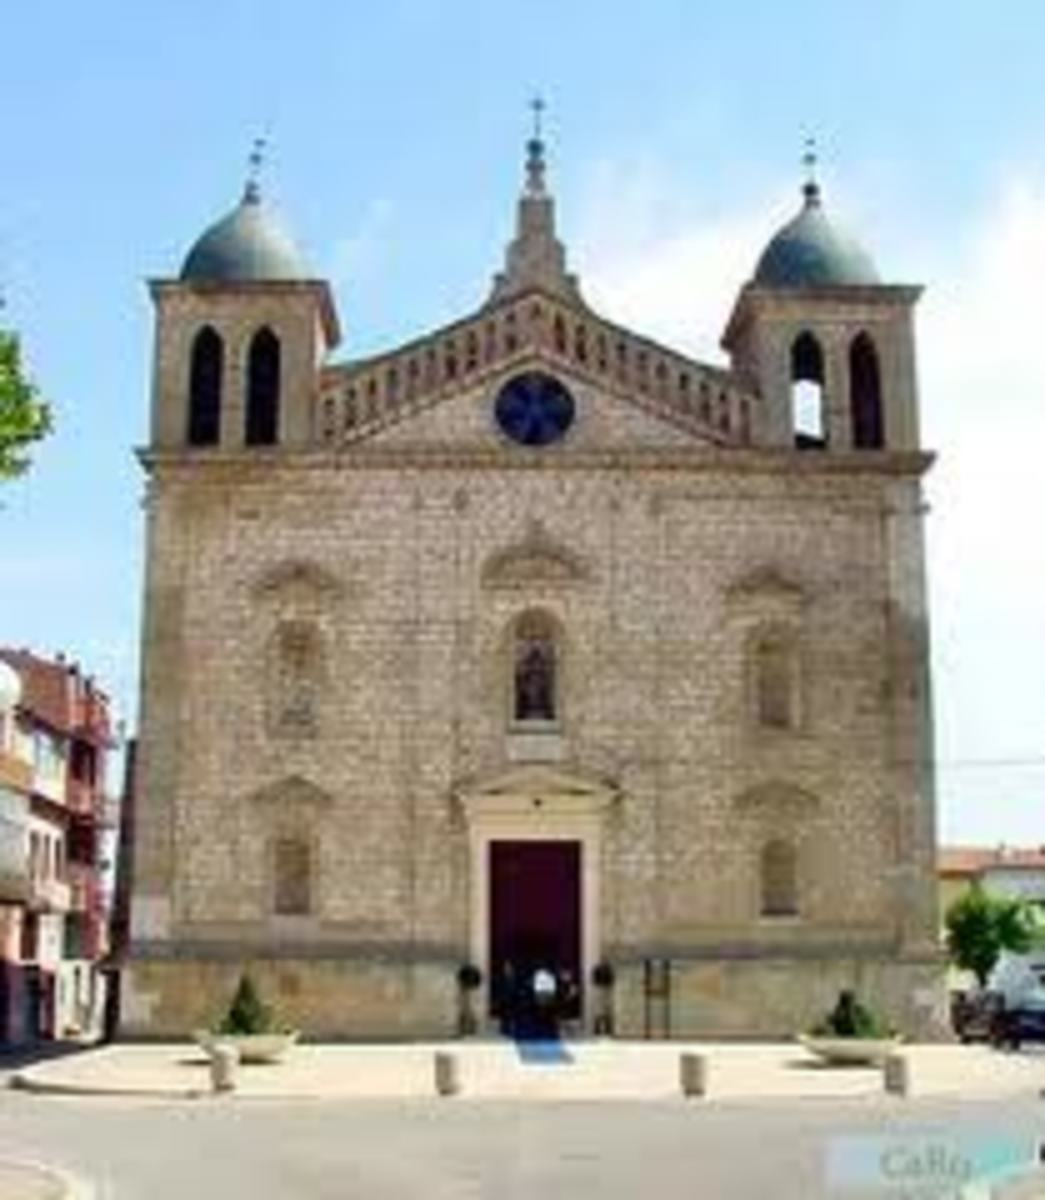 This is the church that the people of Genzano di Lucania built for their Madonna; Maria Santissima delle Grazie.